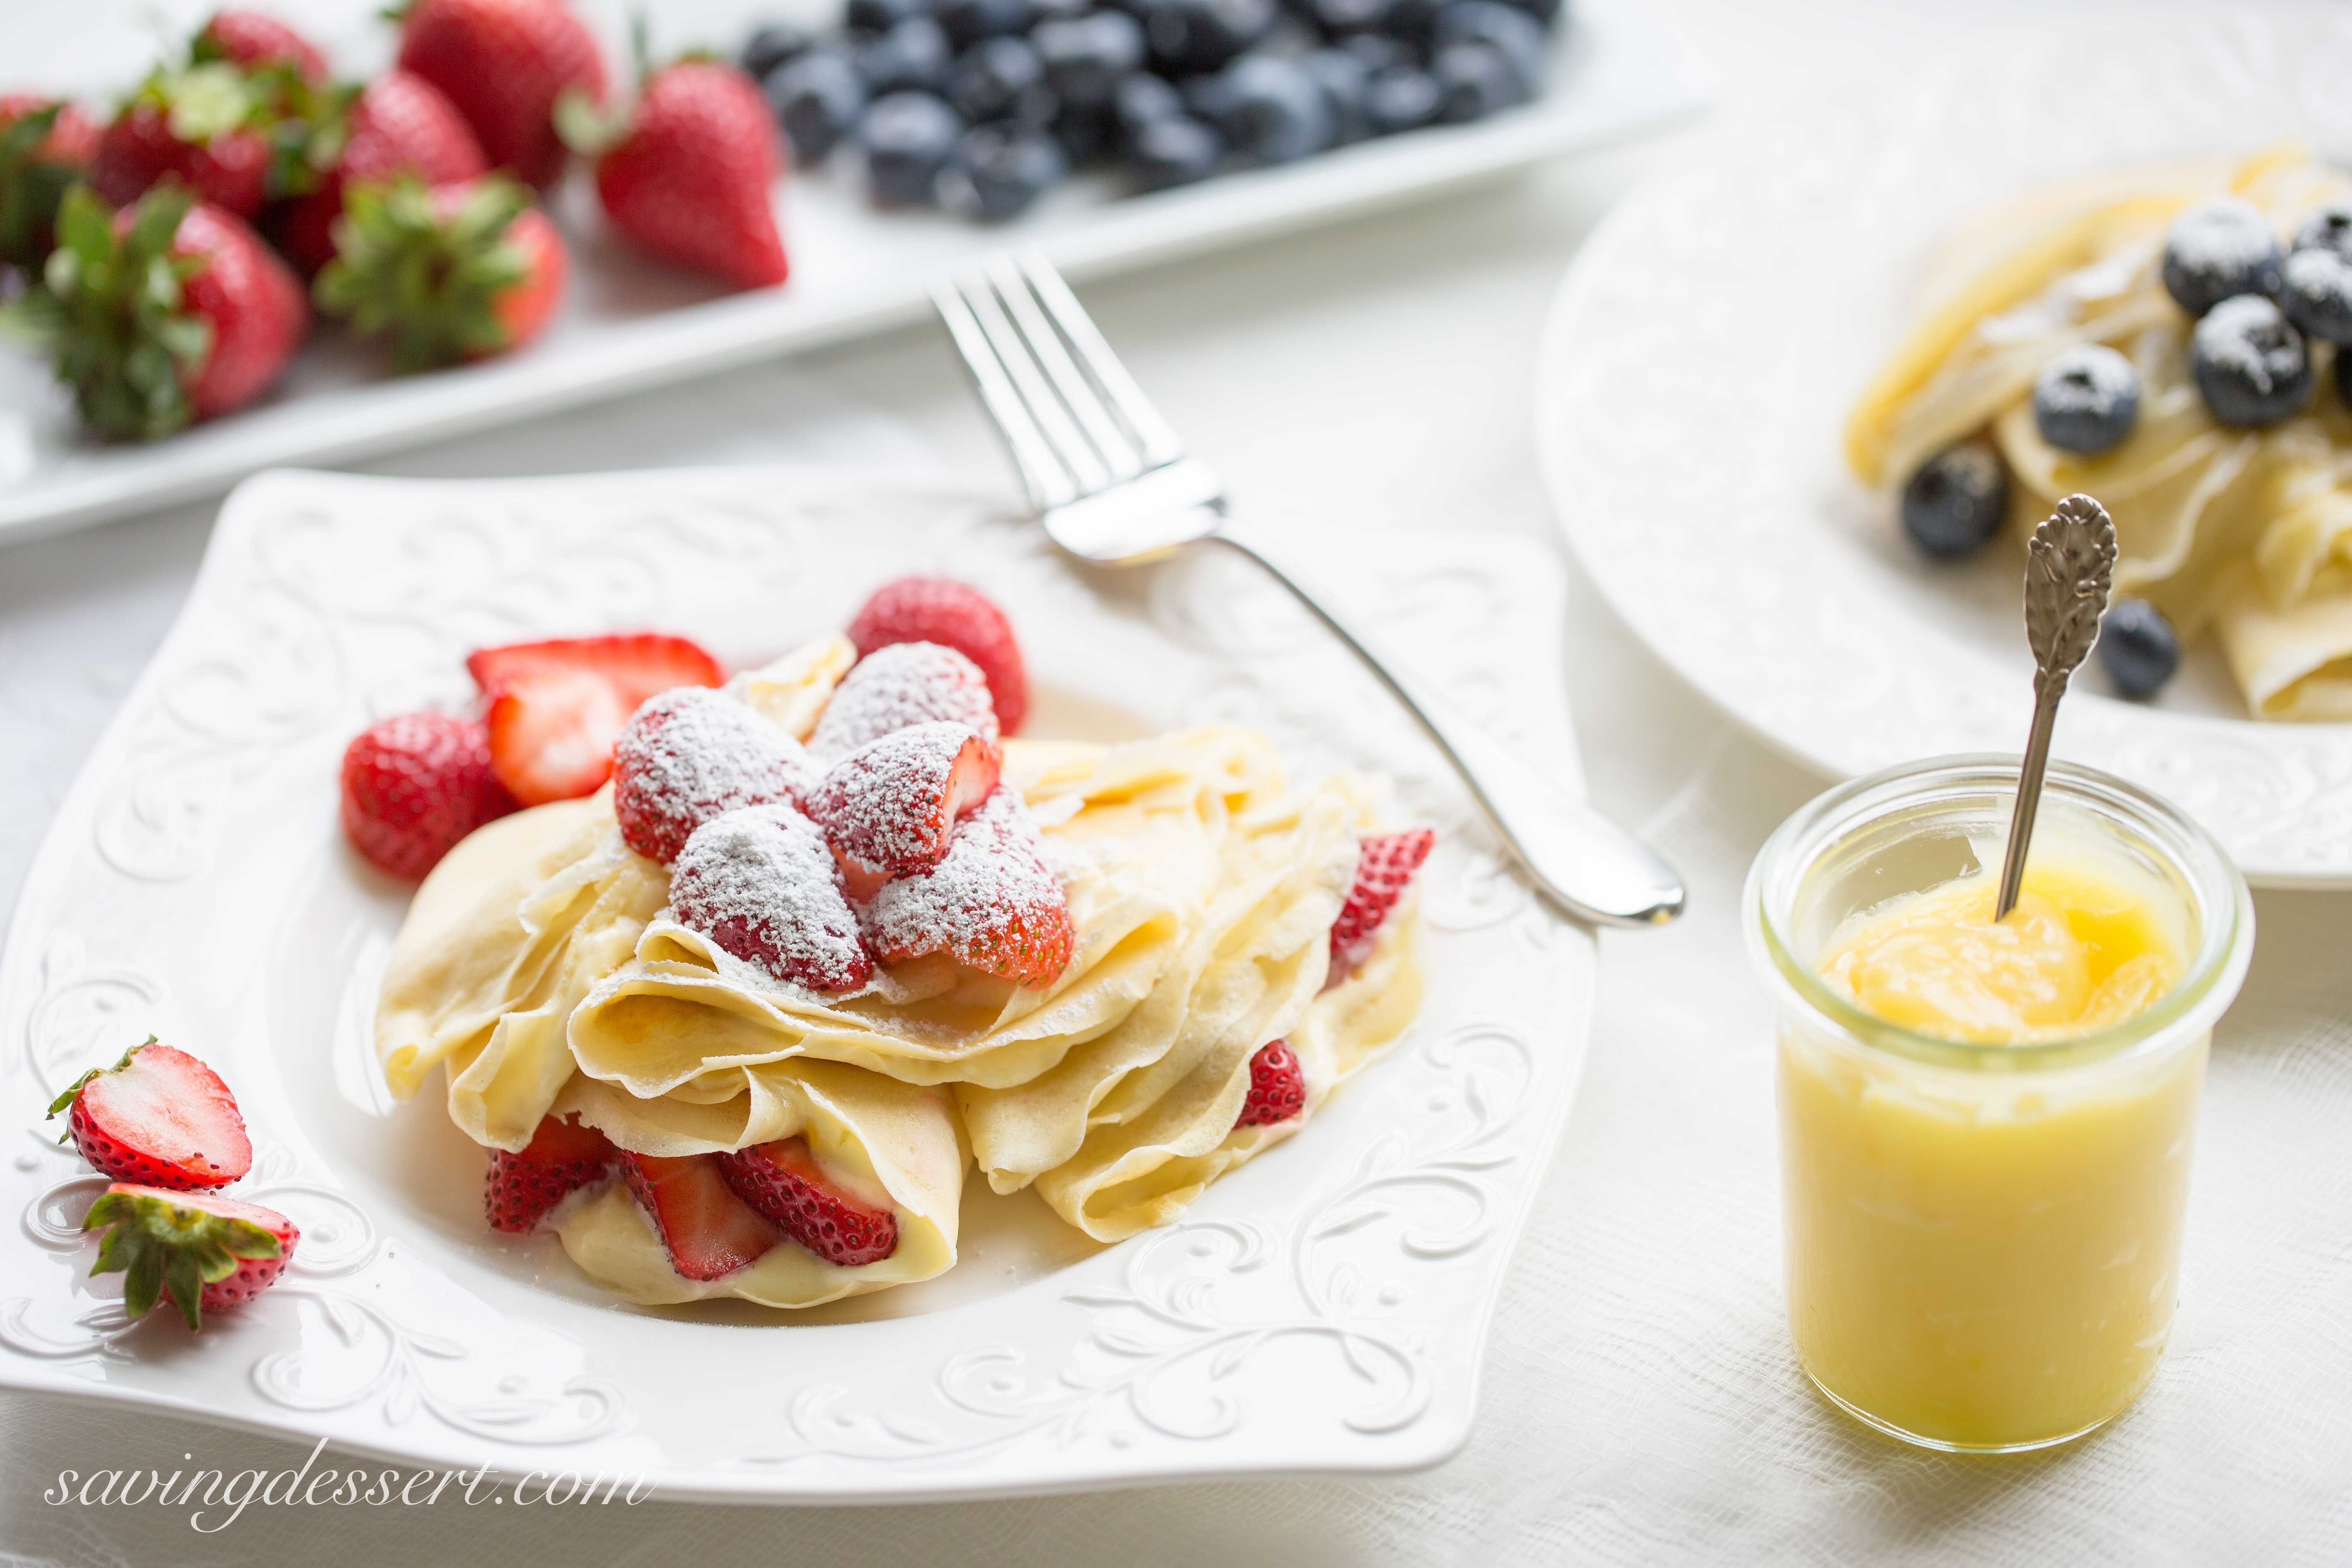 Lemon Crepes With Lemon Creme And Fruit Compote recommendations